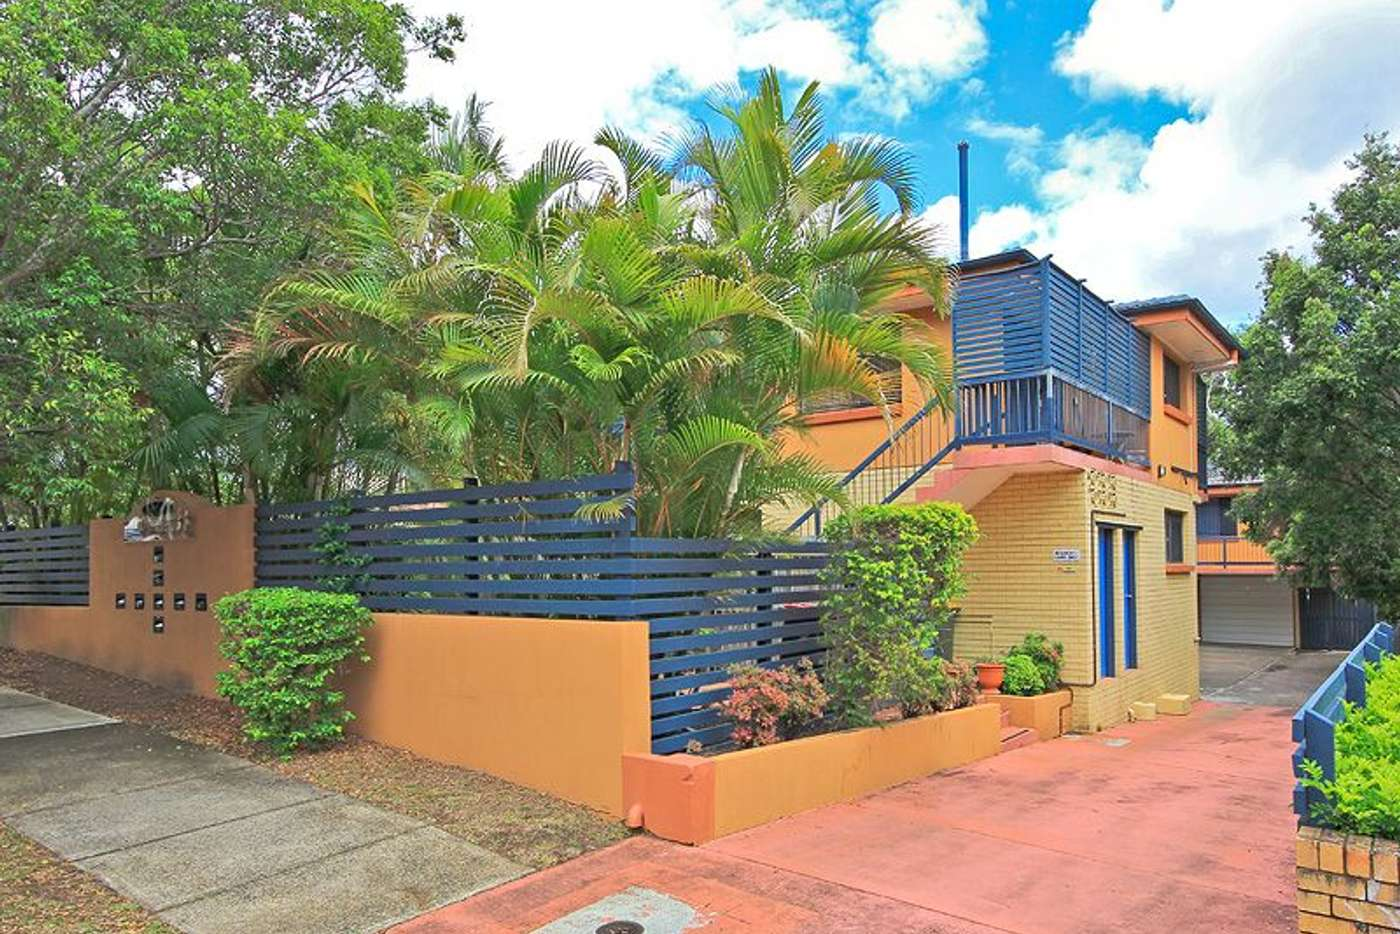 Main view of Homely unit listing, 2/21 Lapraik Street, Ascot QLD 4007